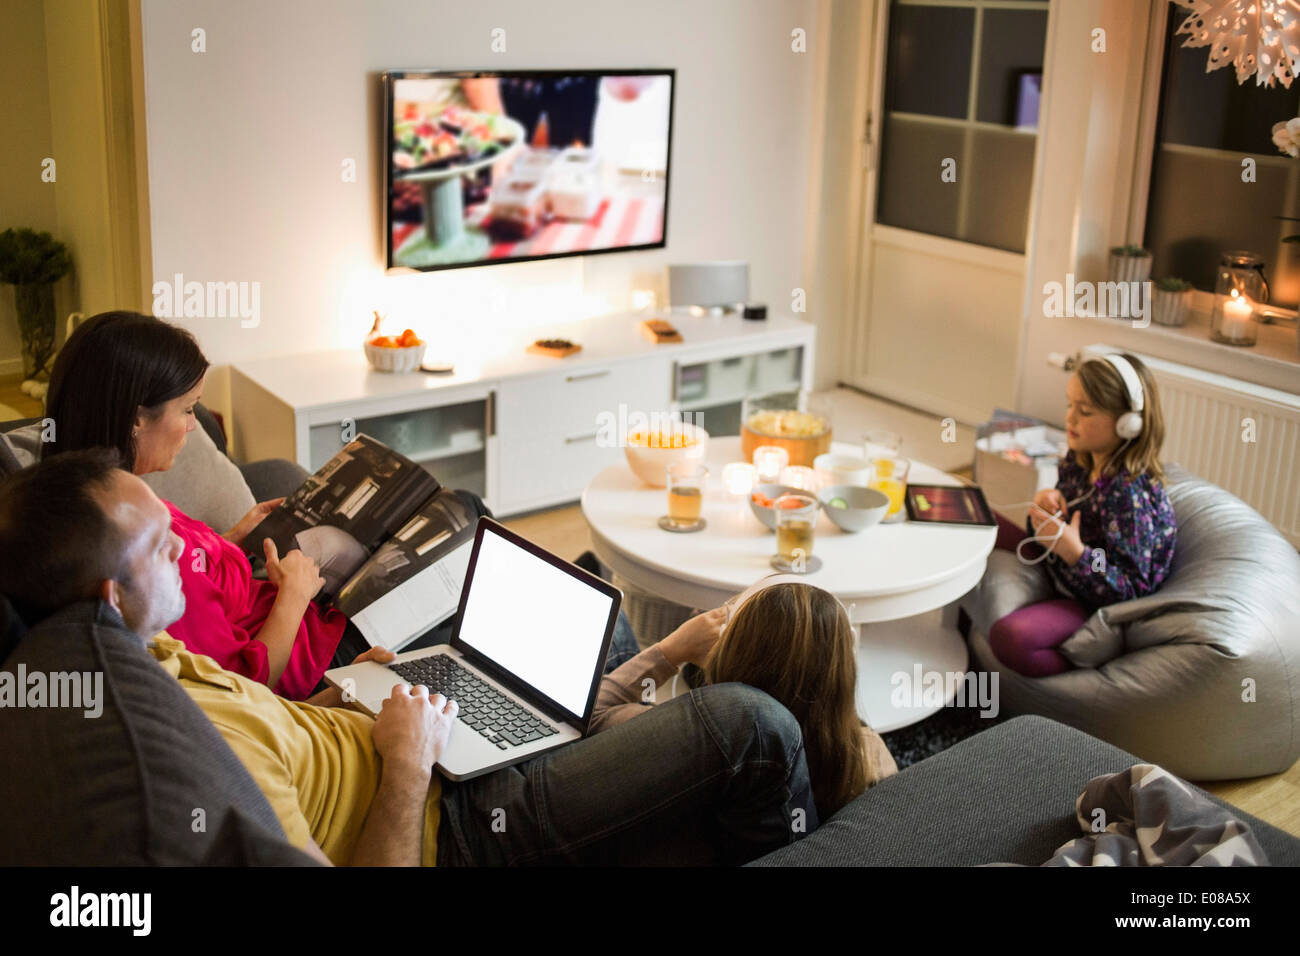 Family using technologies in living room - Stock Image